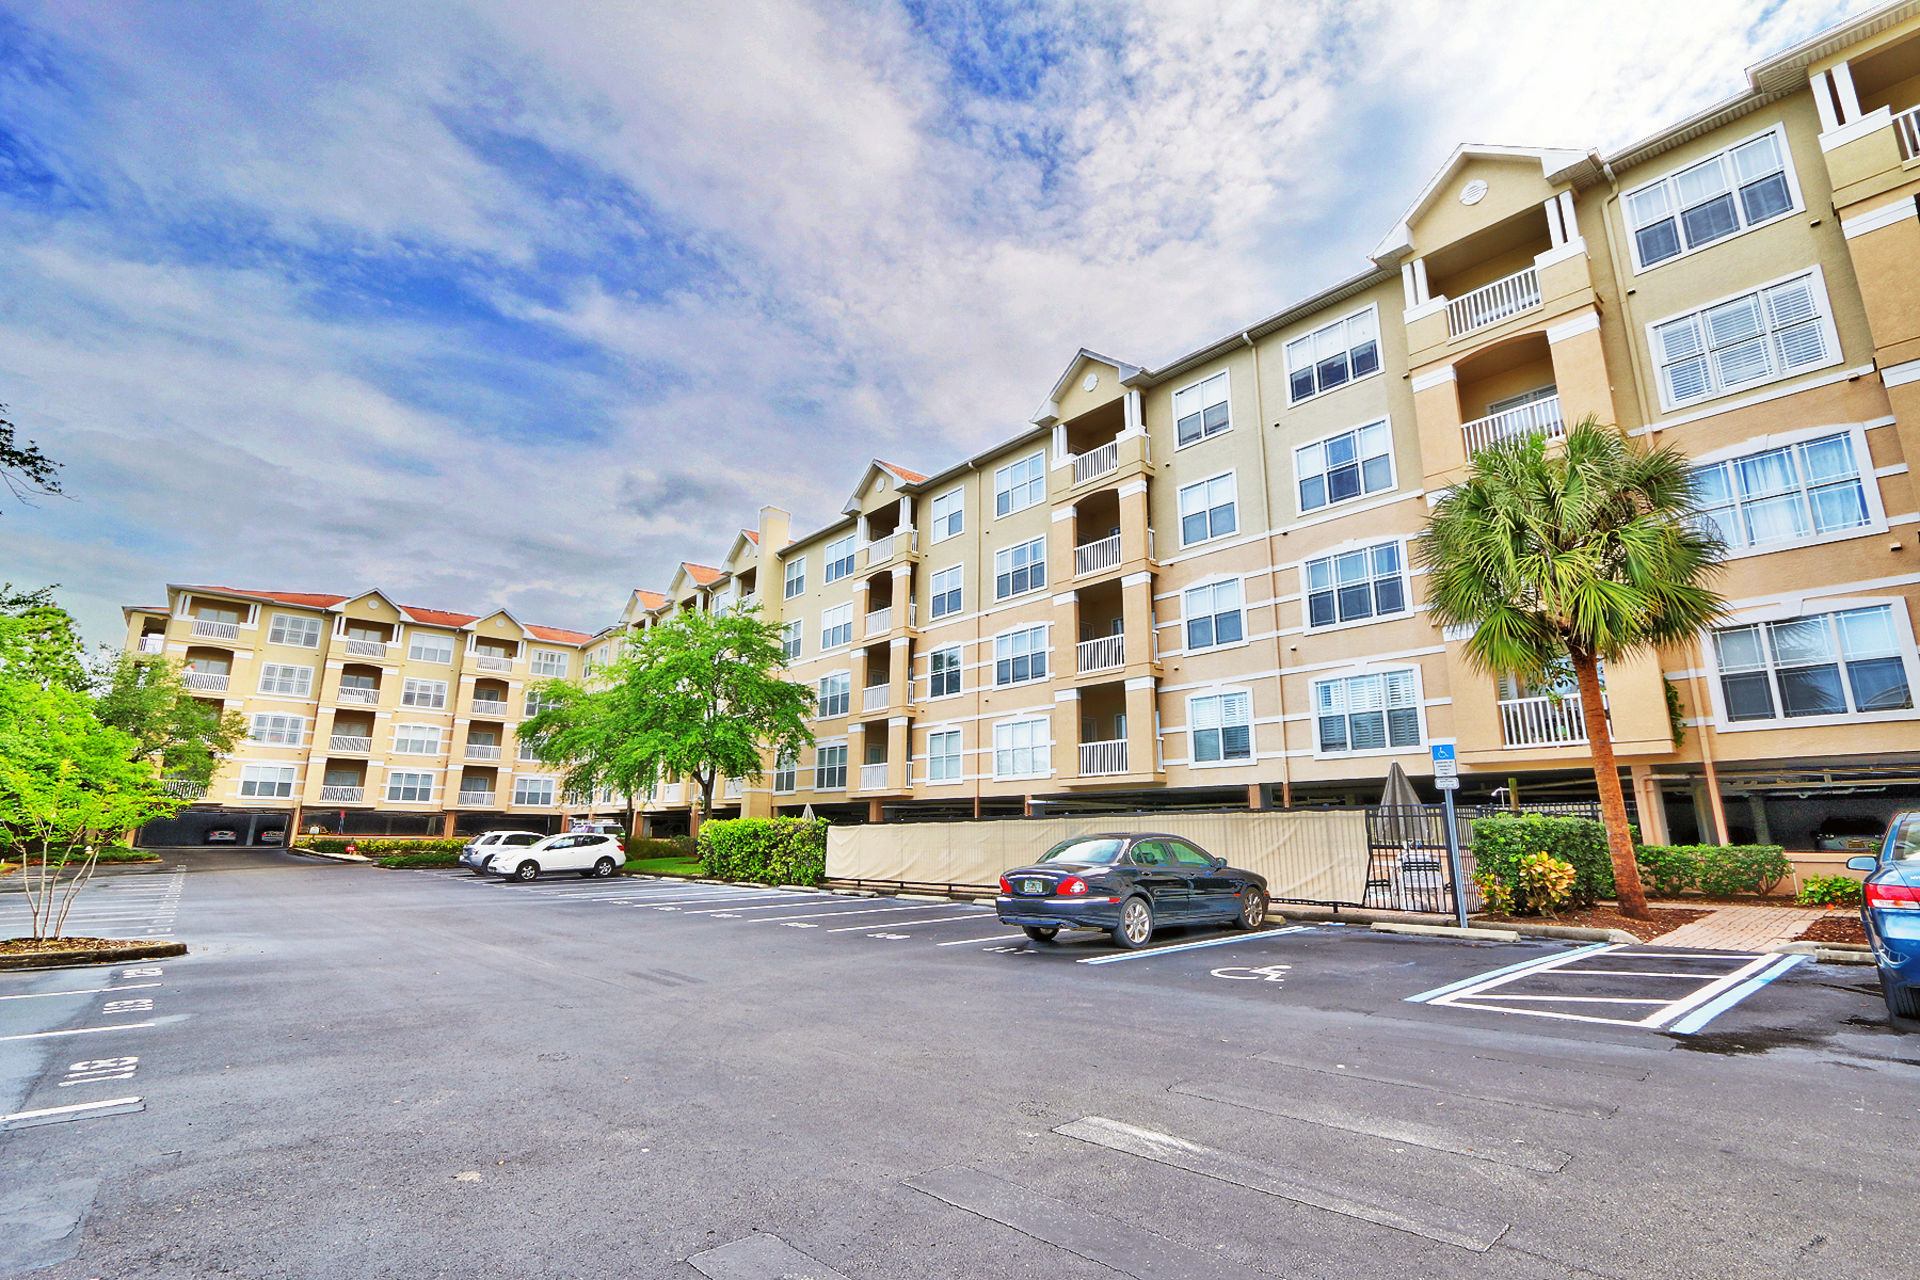 Residence at Renaissance Condo For Sale in Clearwater, FL | MLS U8041381